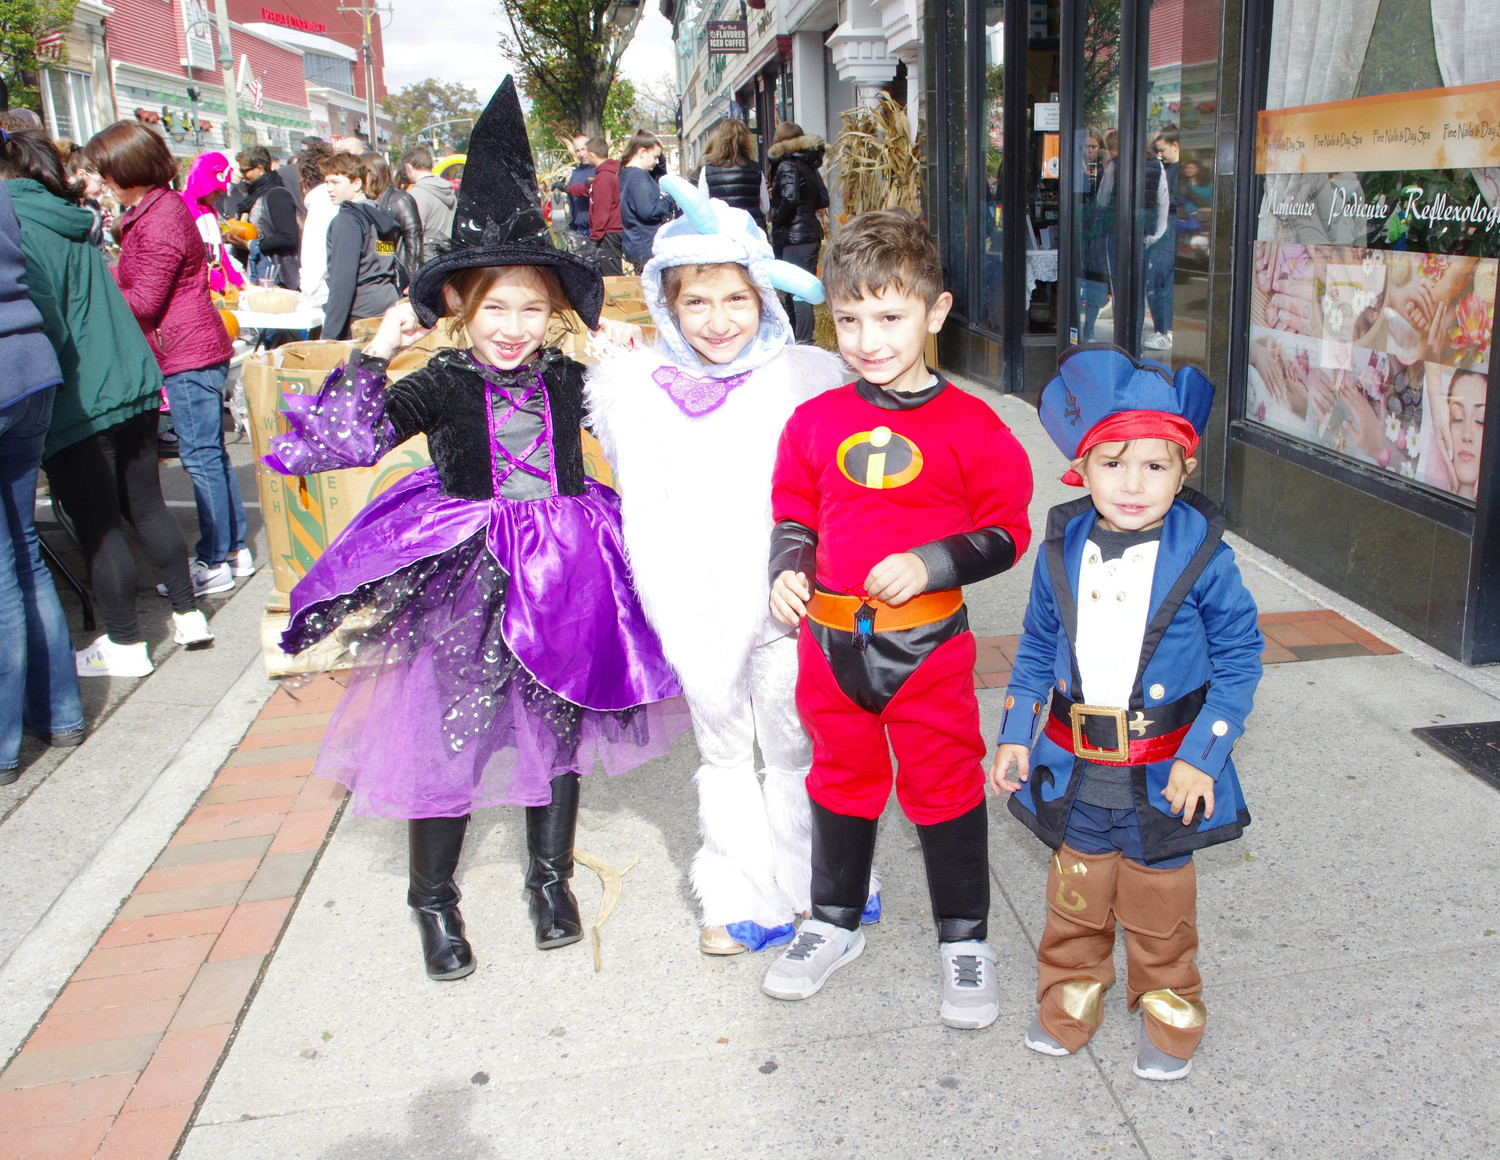 Atlantic Avenue in Lynbrook was a spook-tacular destination last Sunday, as the village hosted its annual Halloween Havoc event. Dozens of children lined the street in costumes, including, from left, Angelina Grenier, 6, and Tula, Chris and Michael Mikedis, ages 6, 5 and 2.